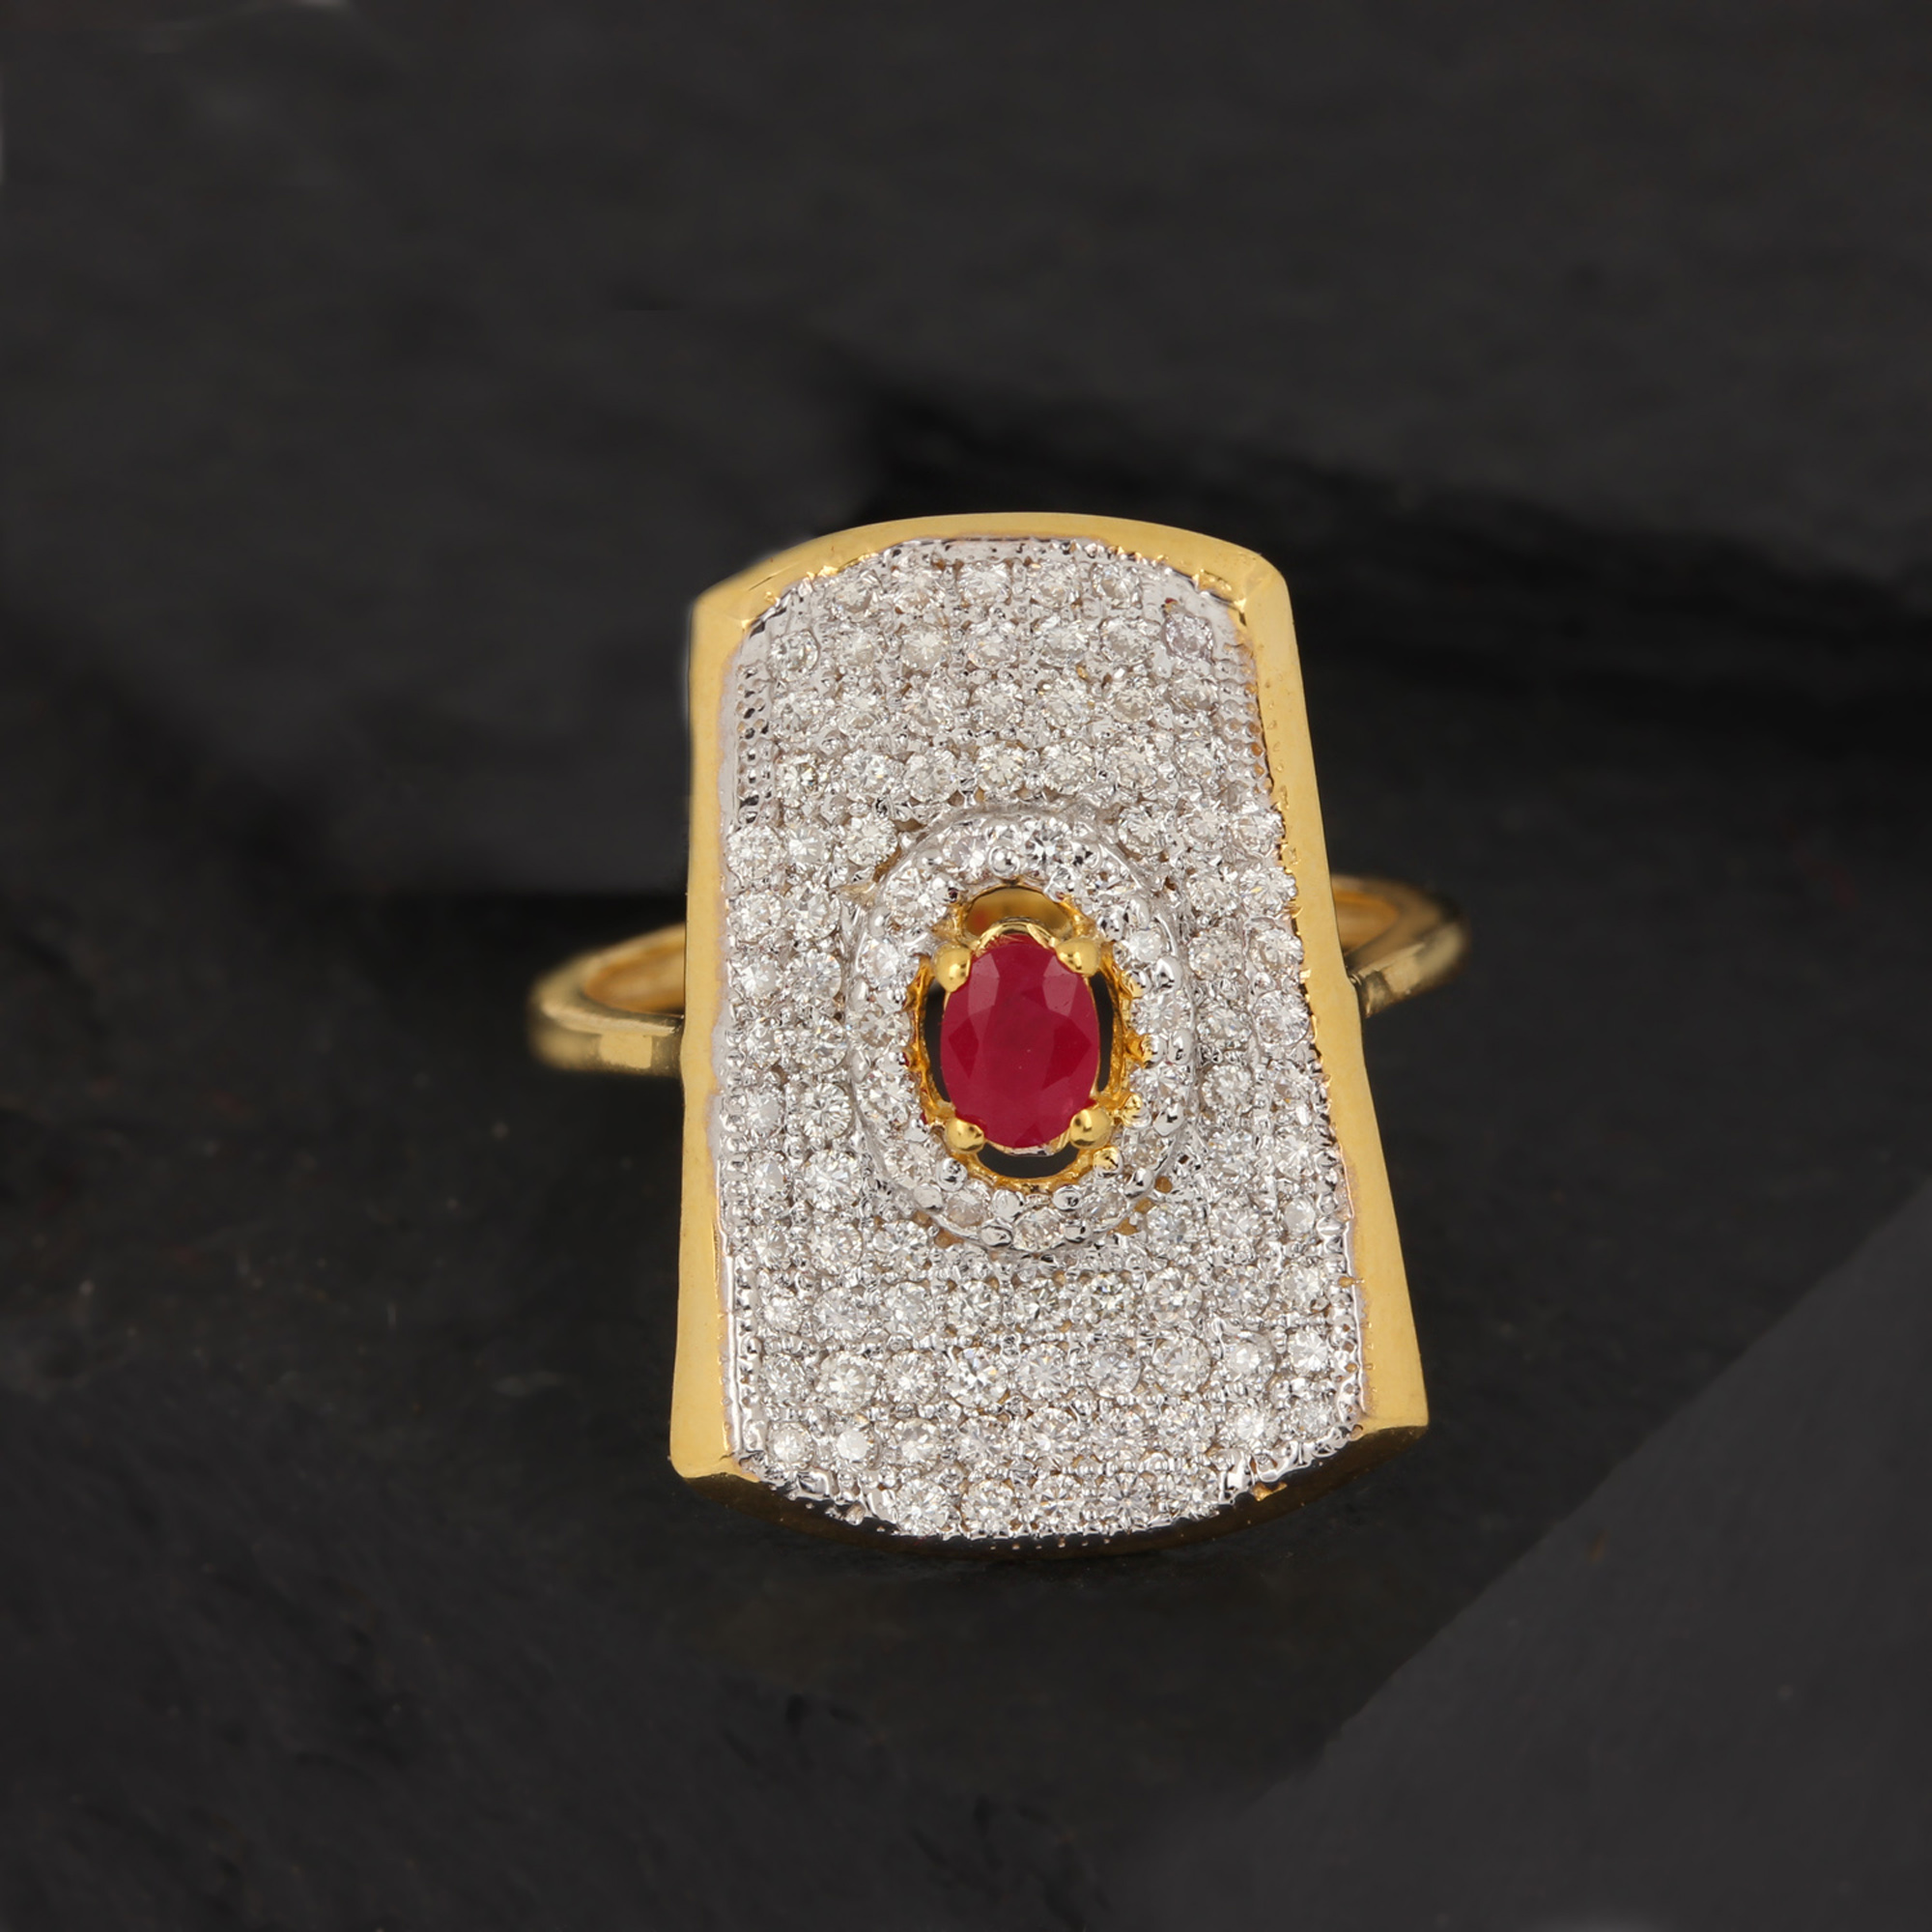 Gold beautiful ring with diamond ruby